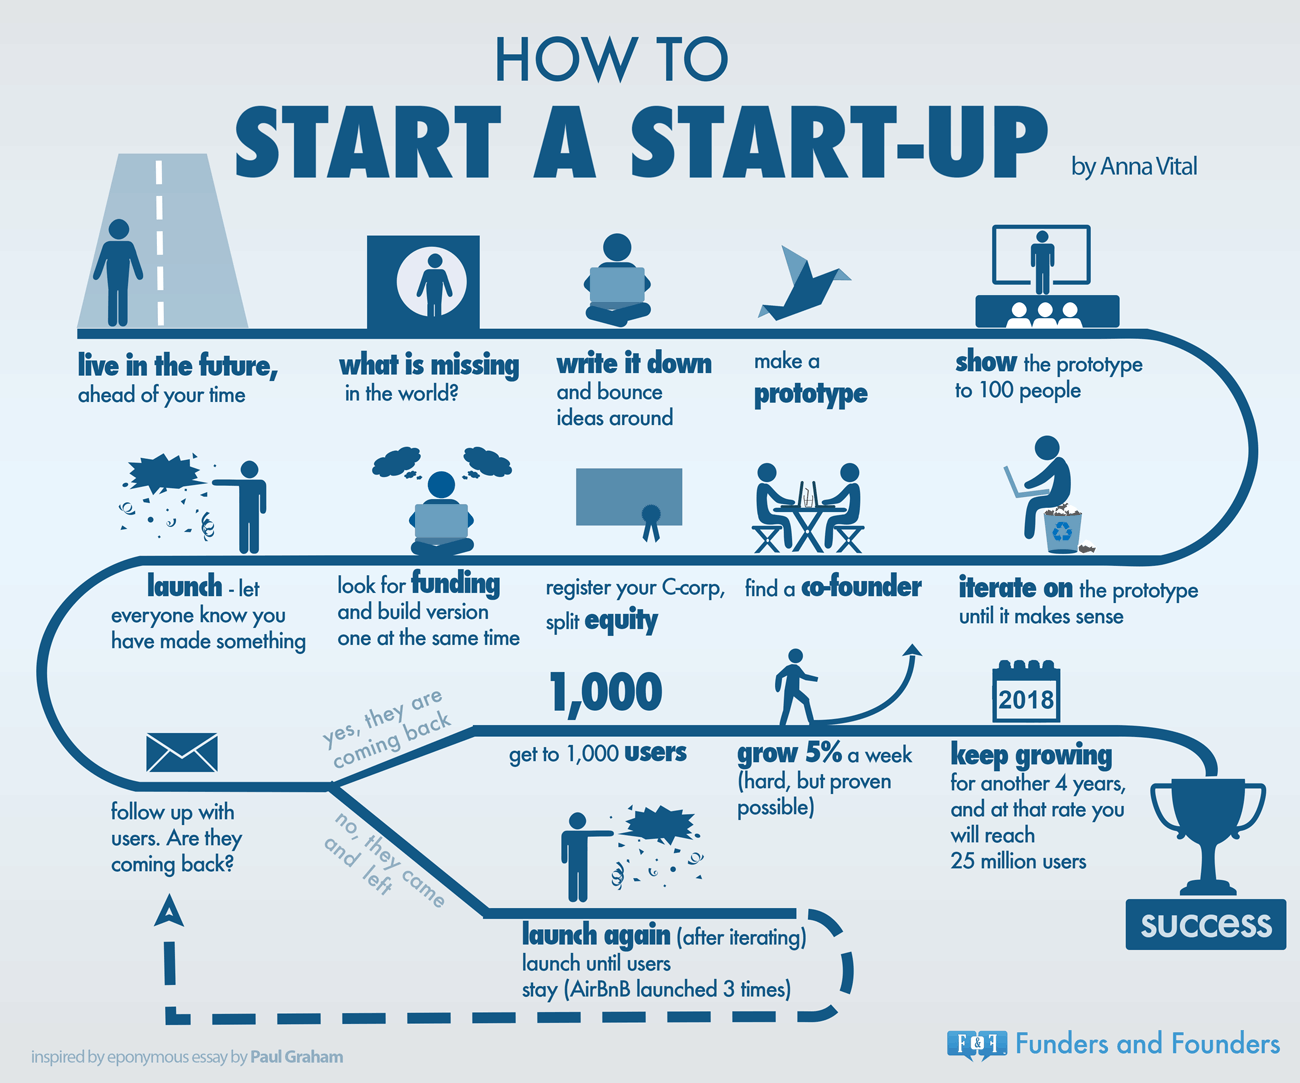 How to start a start-up infographic by Anna Vital of Funders & Founders